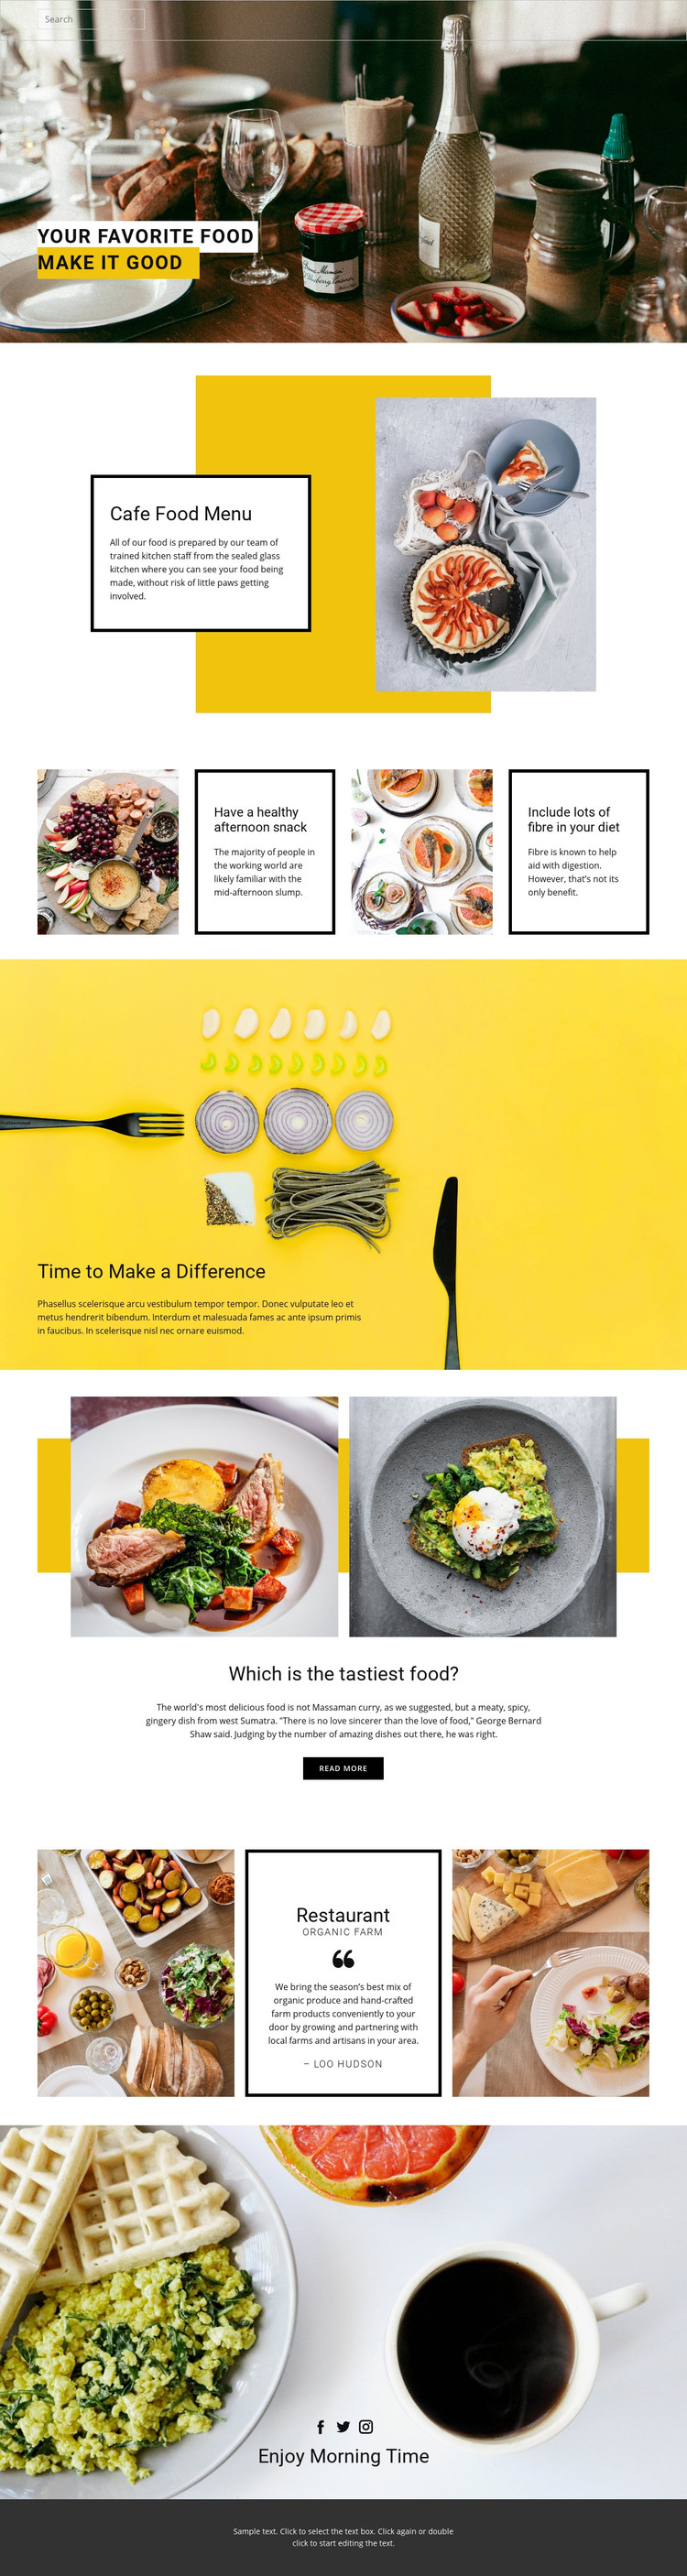 Cook your favorite food Homepage Design